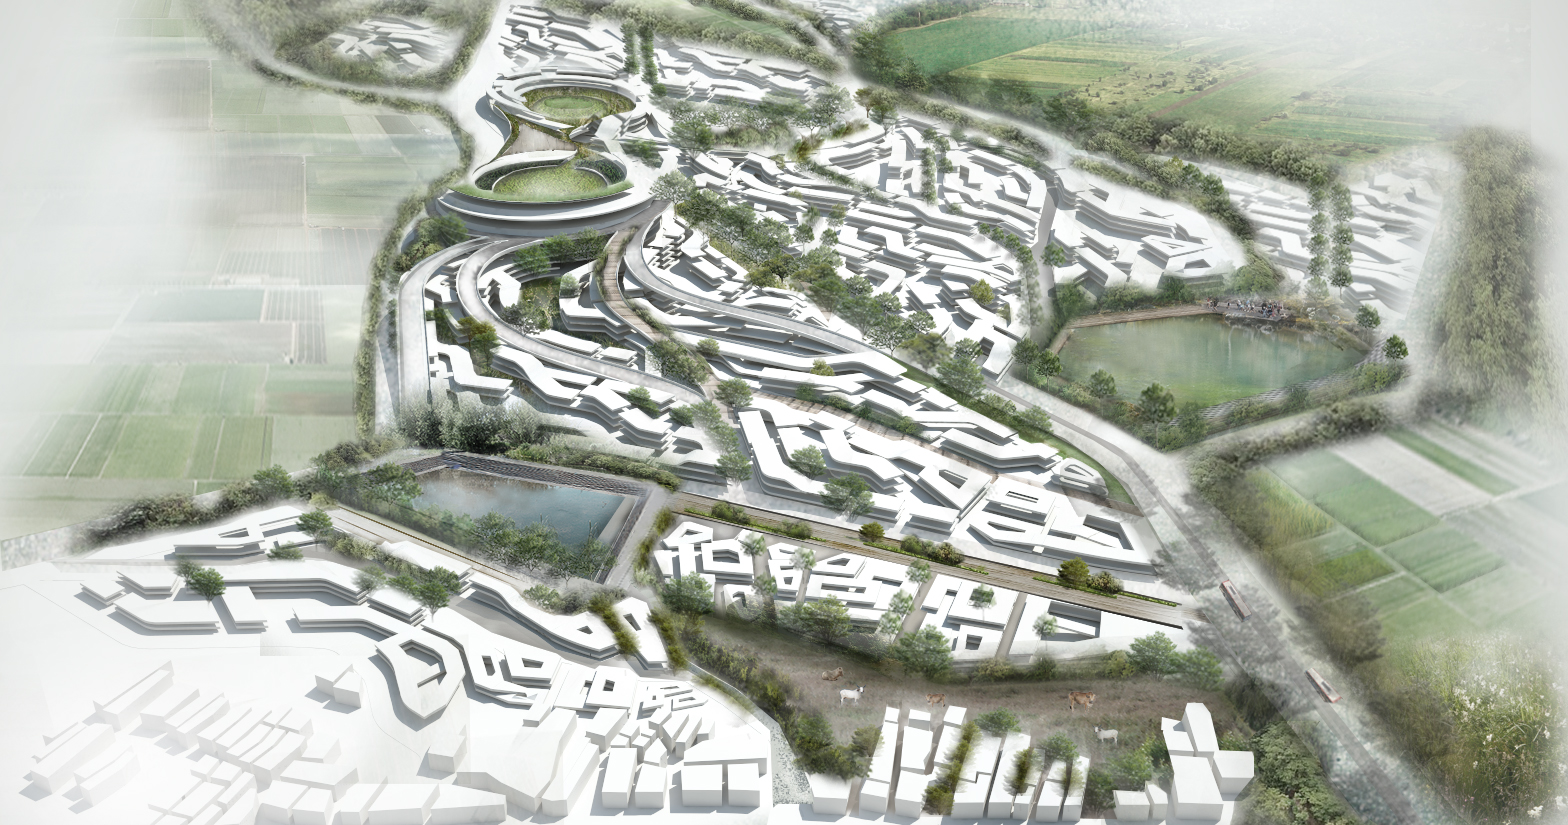 booklet birdview masterplan